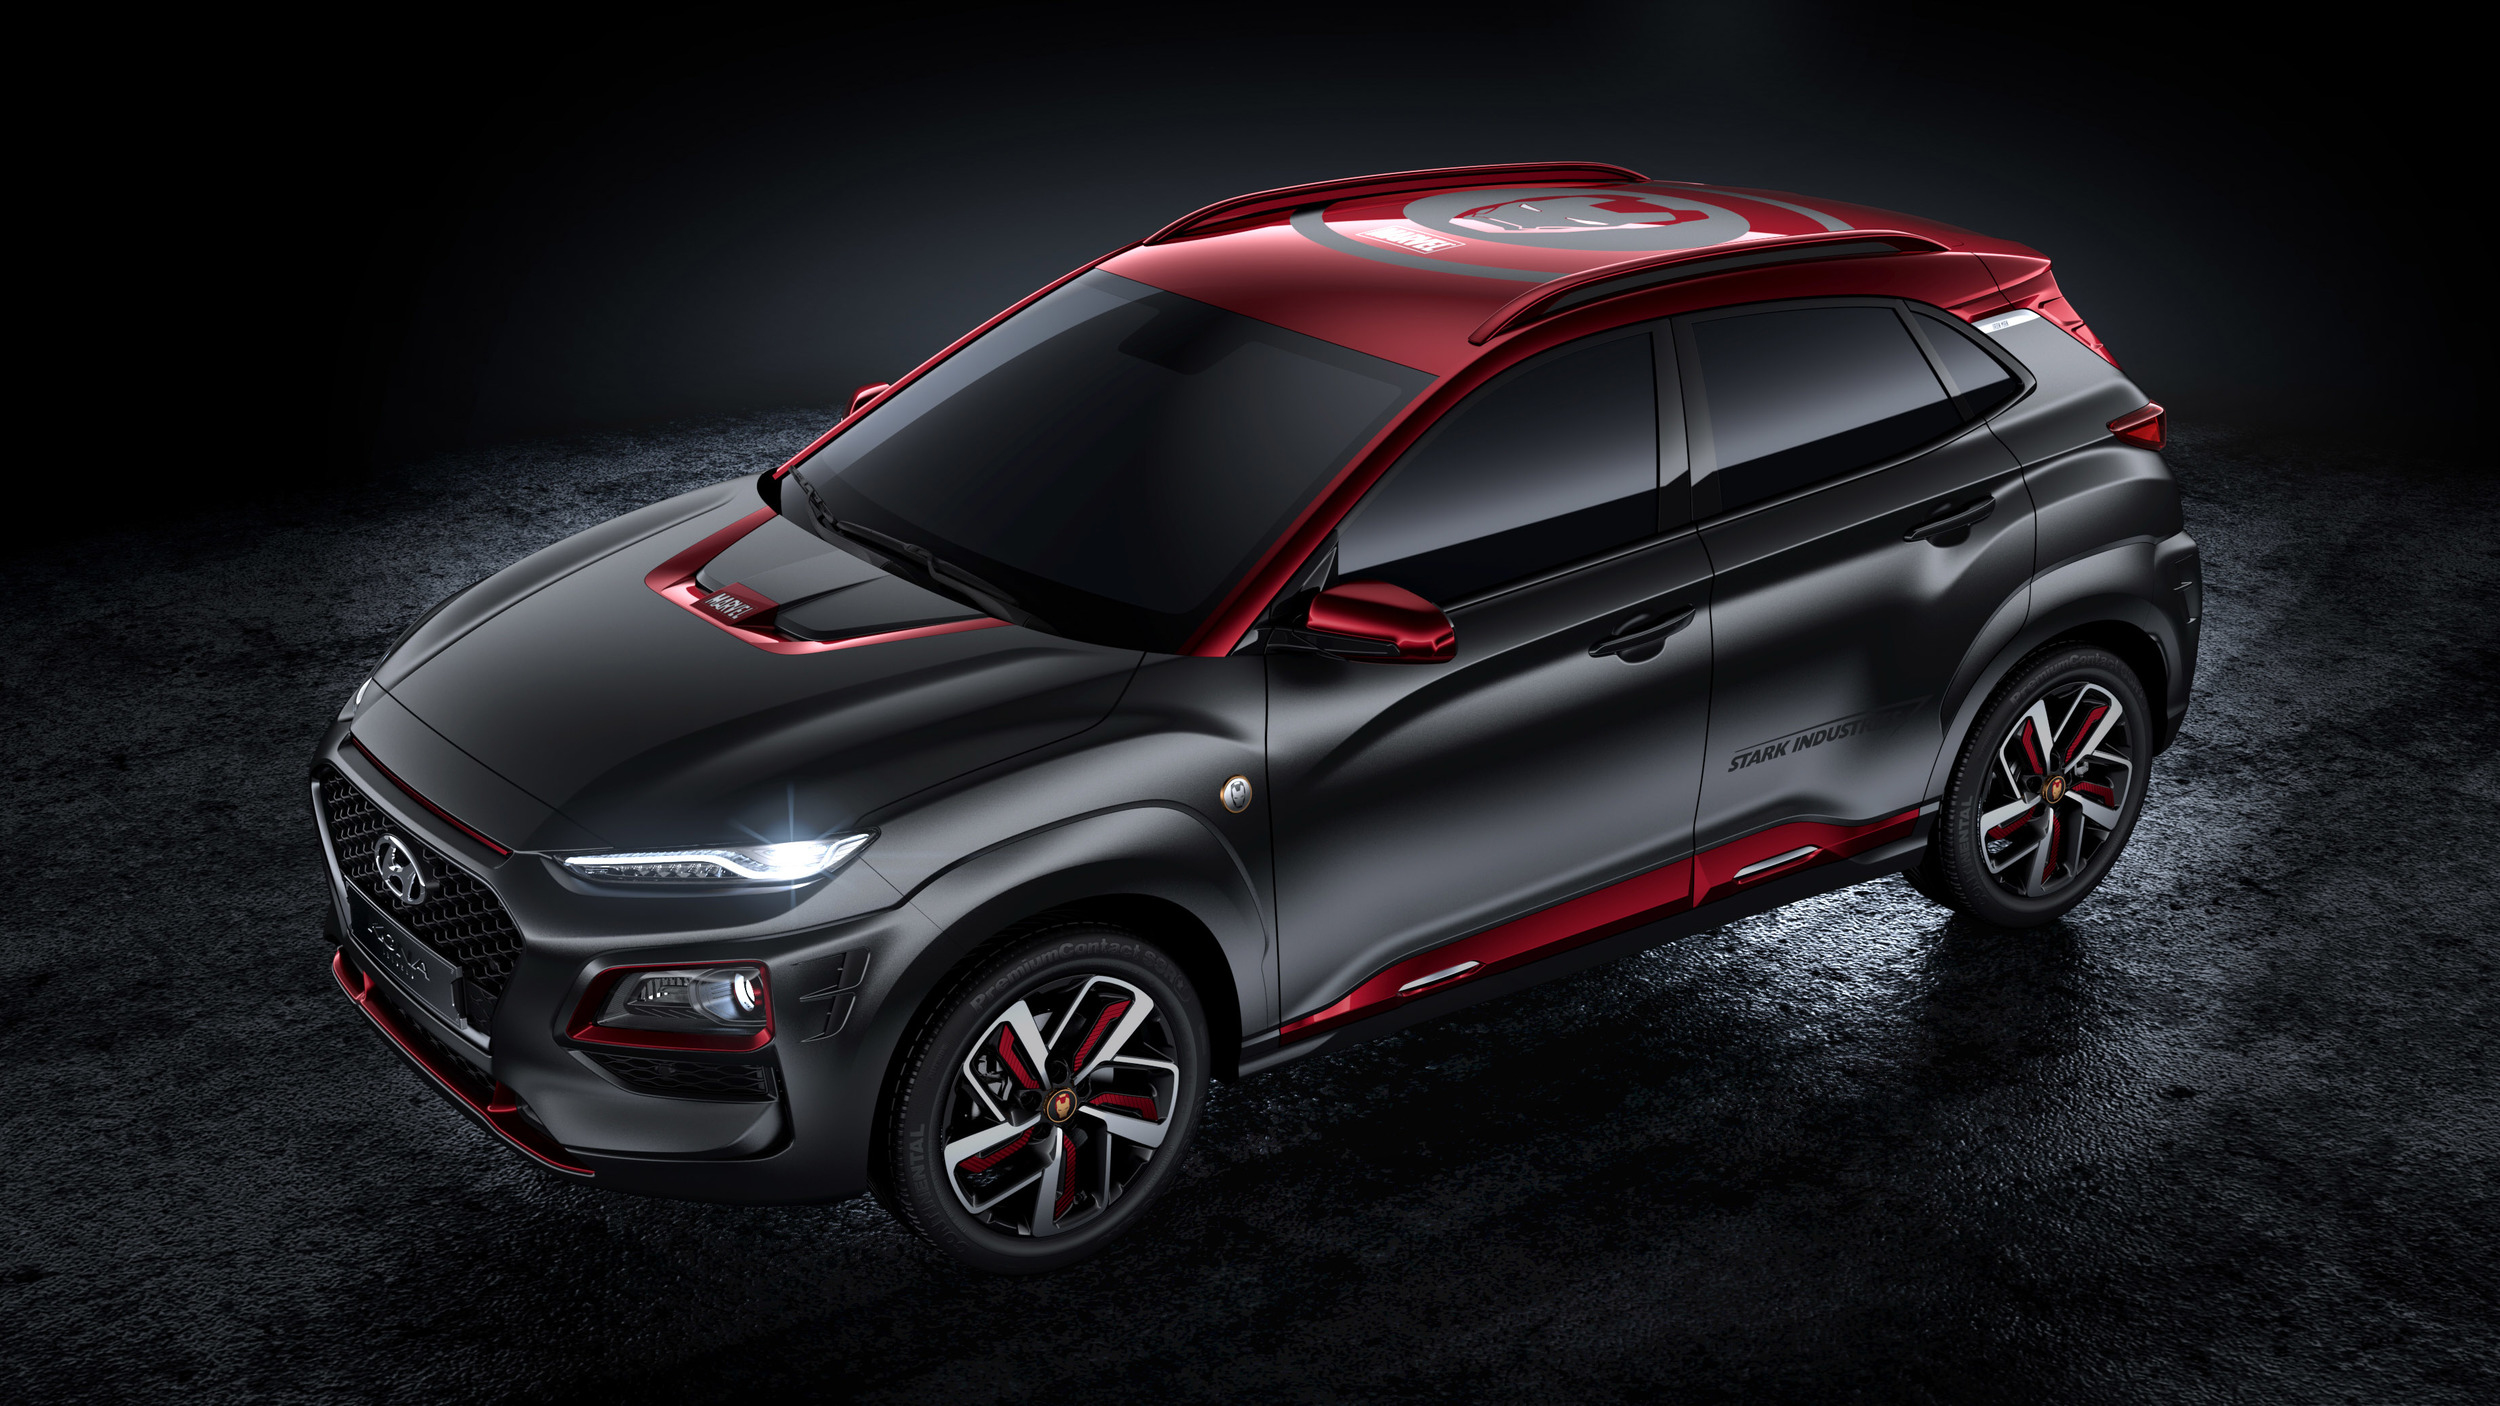 Hyundai Kona Iron Man Edition (3)